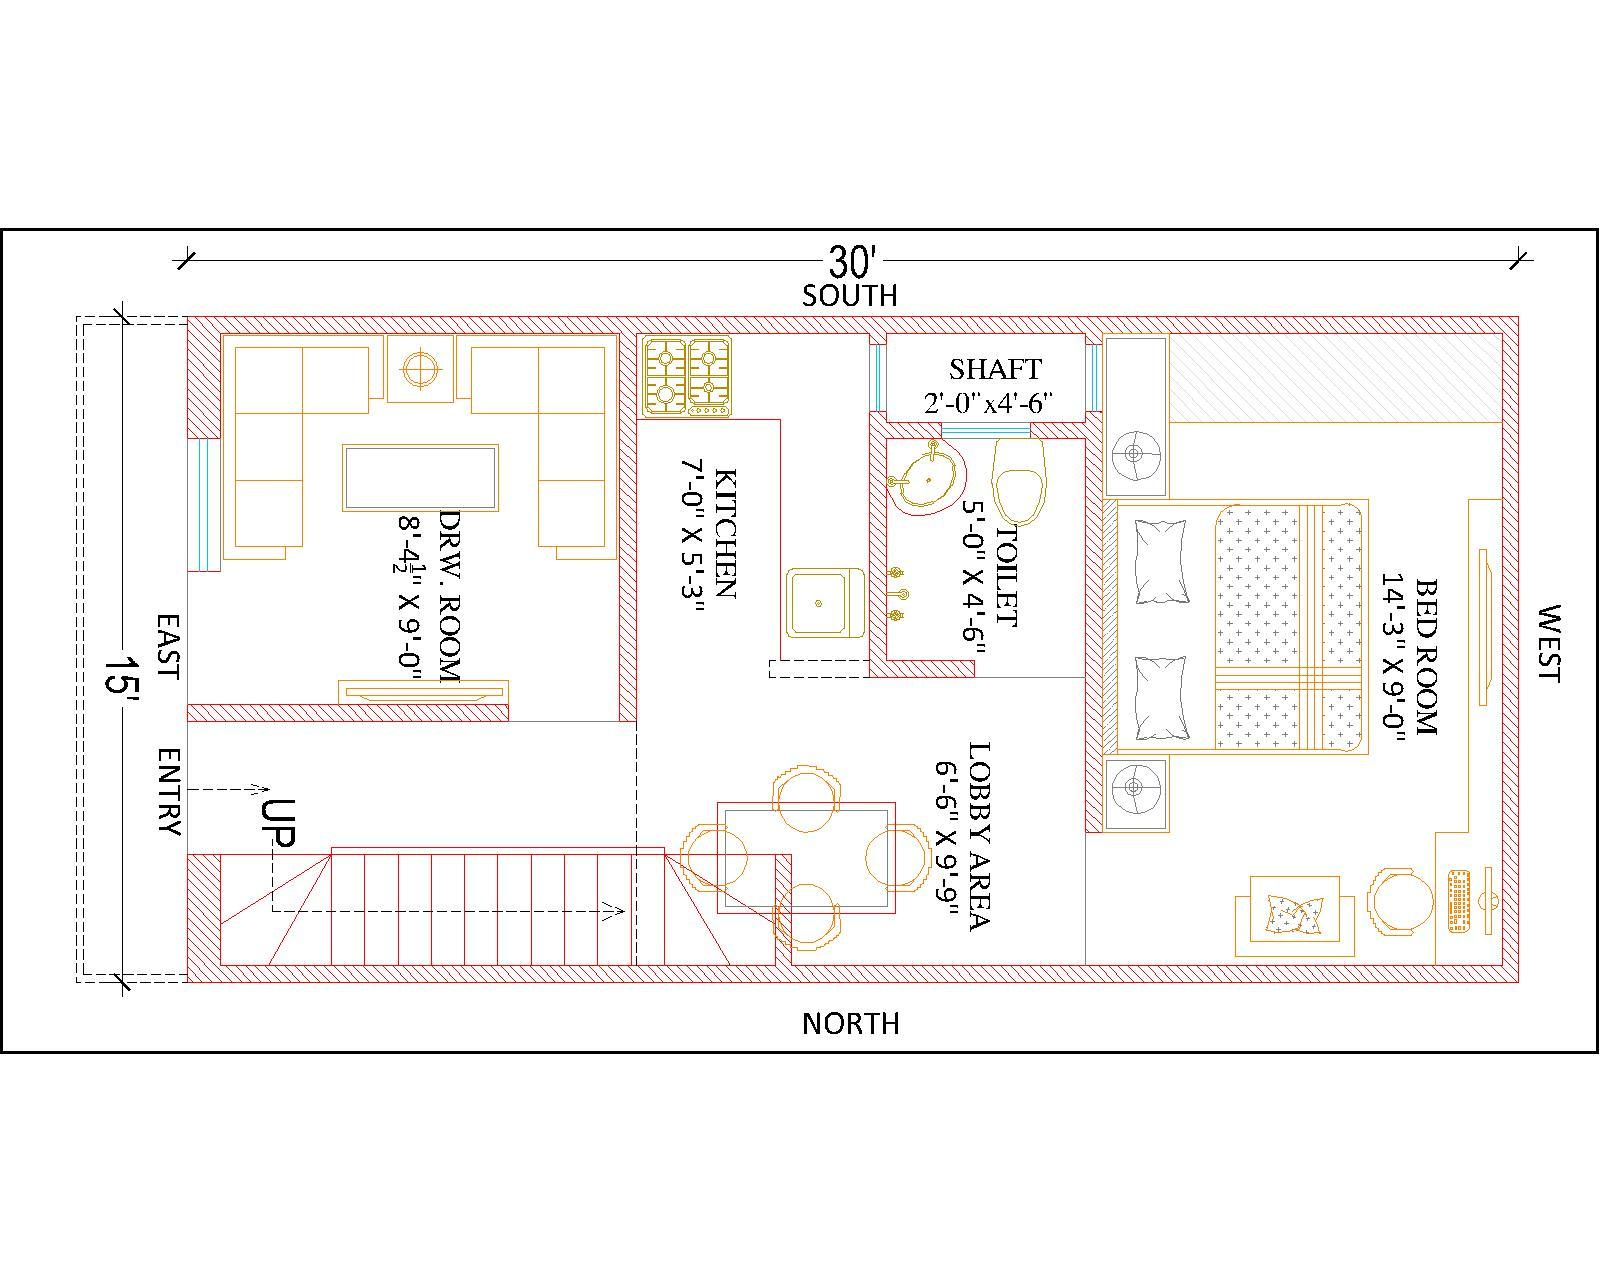 15 X 30 House Plans Pictures To Pin On Pinterest Pinsdaddy